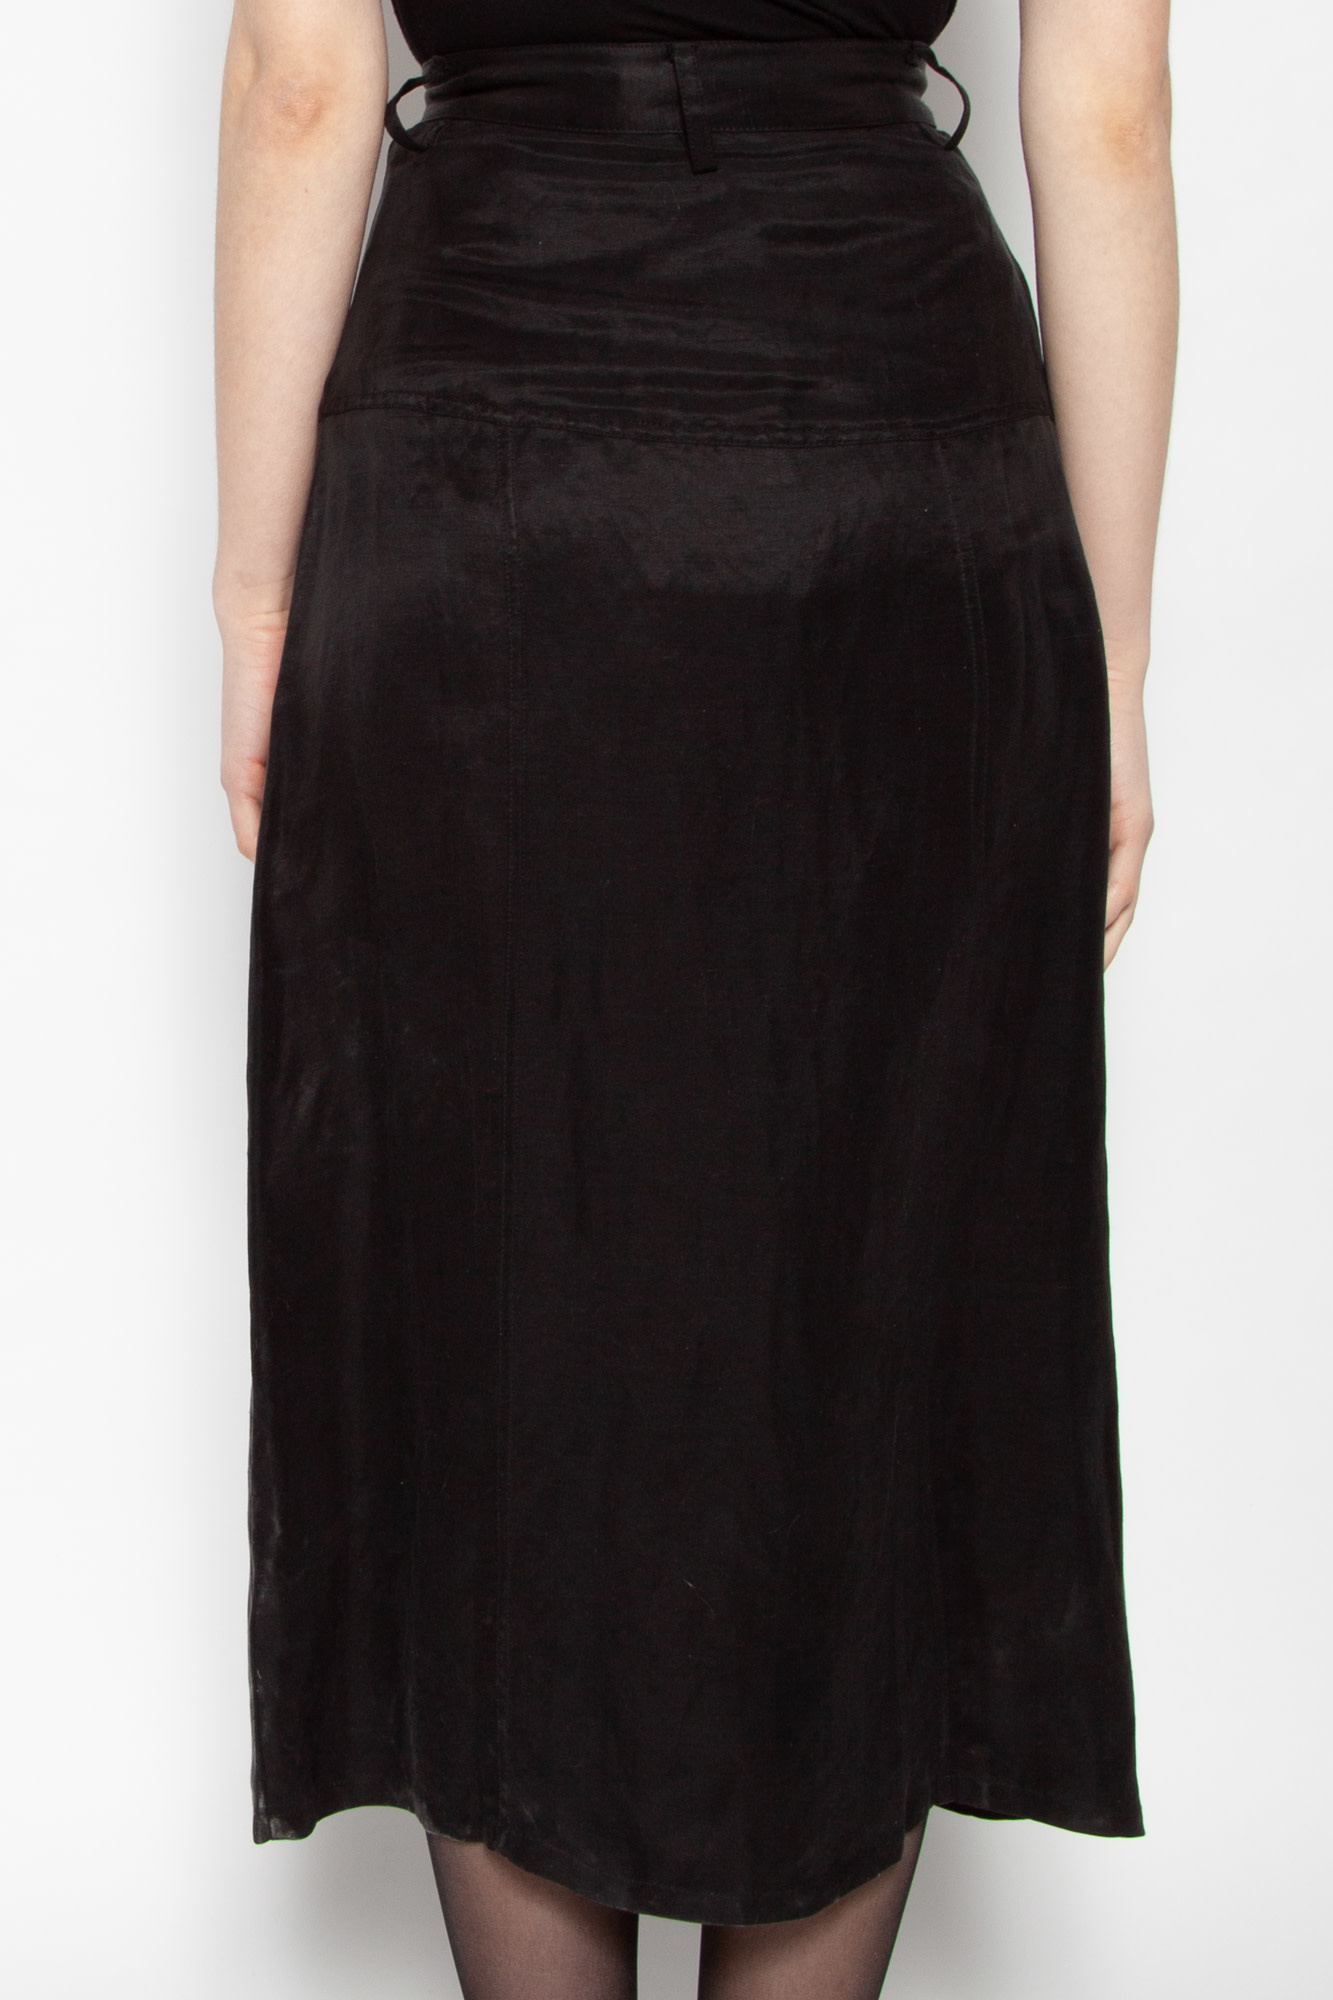 Third Form SKIRT BLACK - NEW WITH TAG